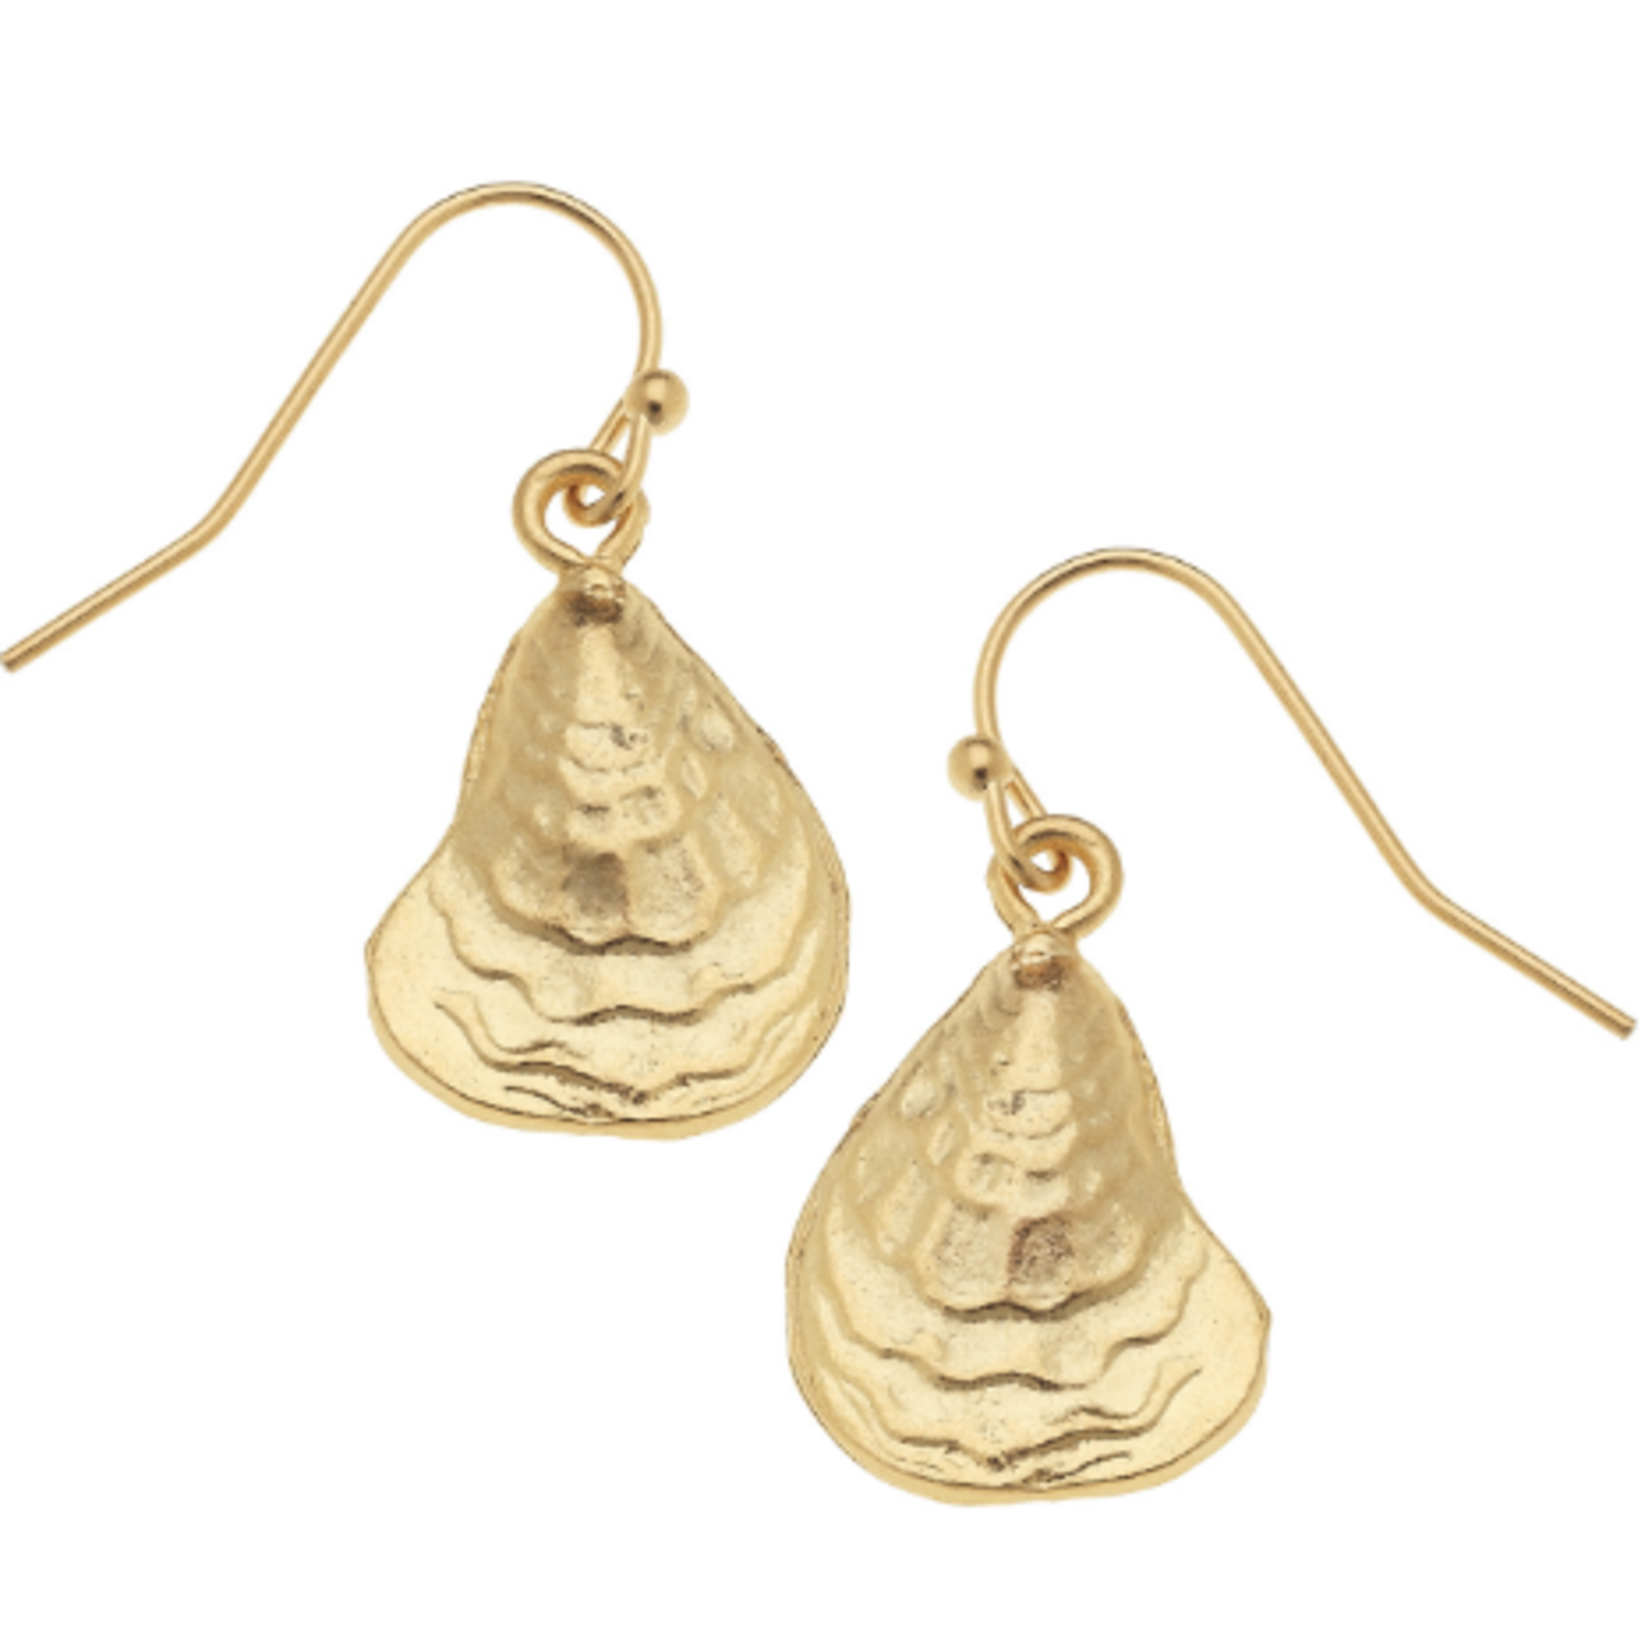 Susan Shaw Susan Shaw Gold Oyster Earrings